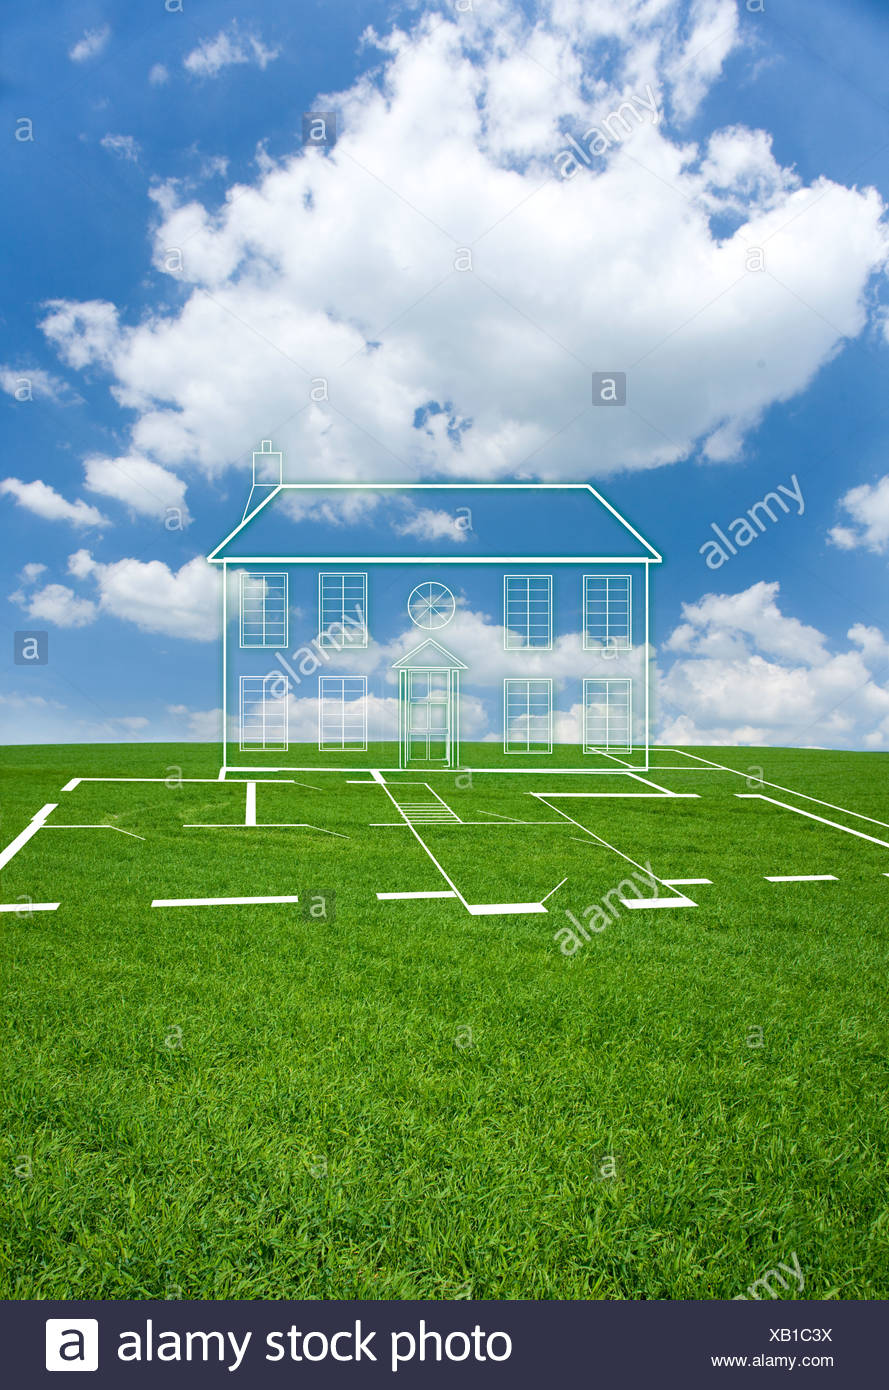 Cut out house dans grass field Photo Stock